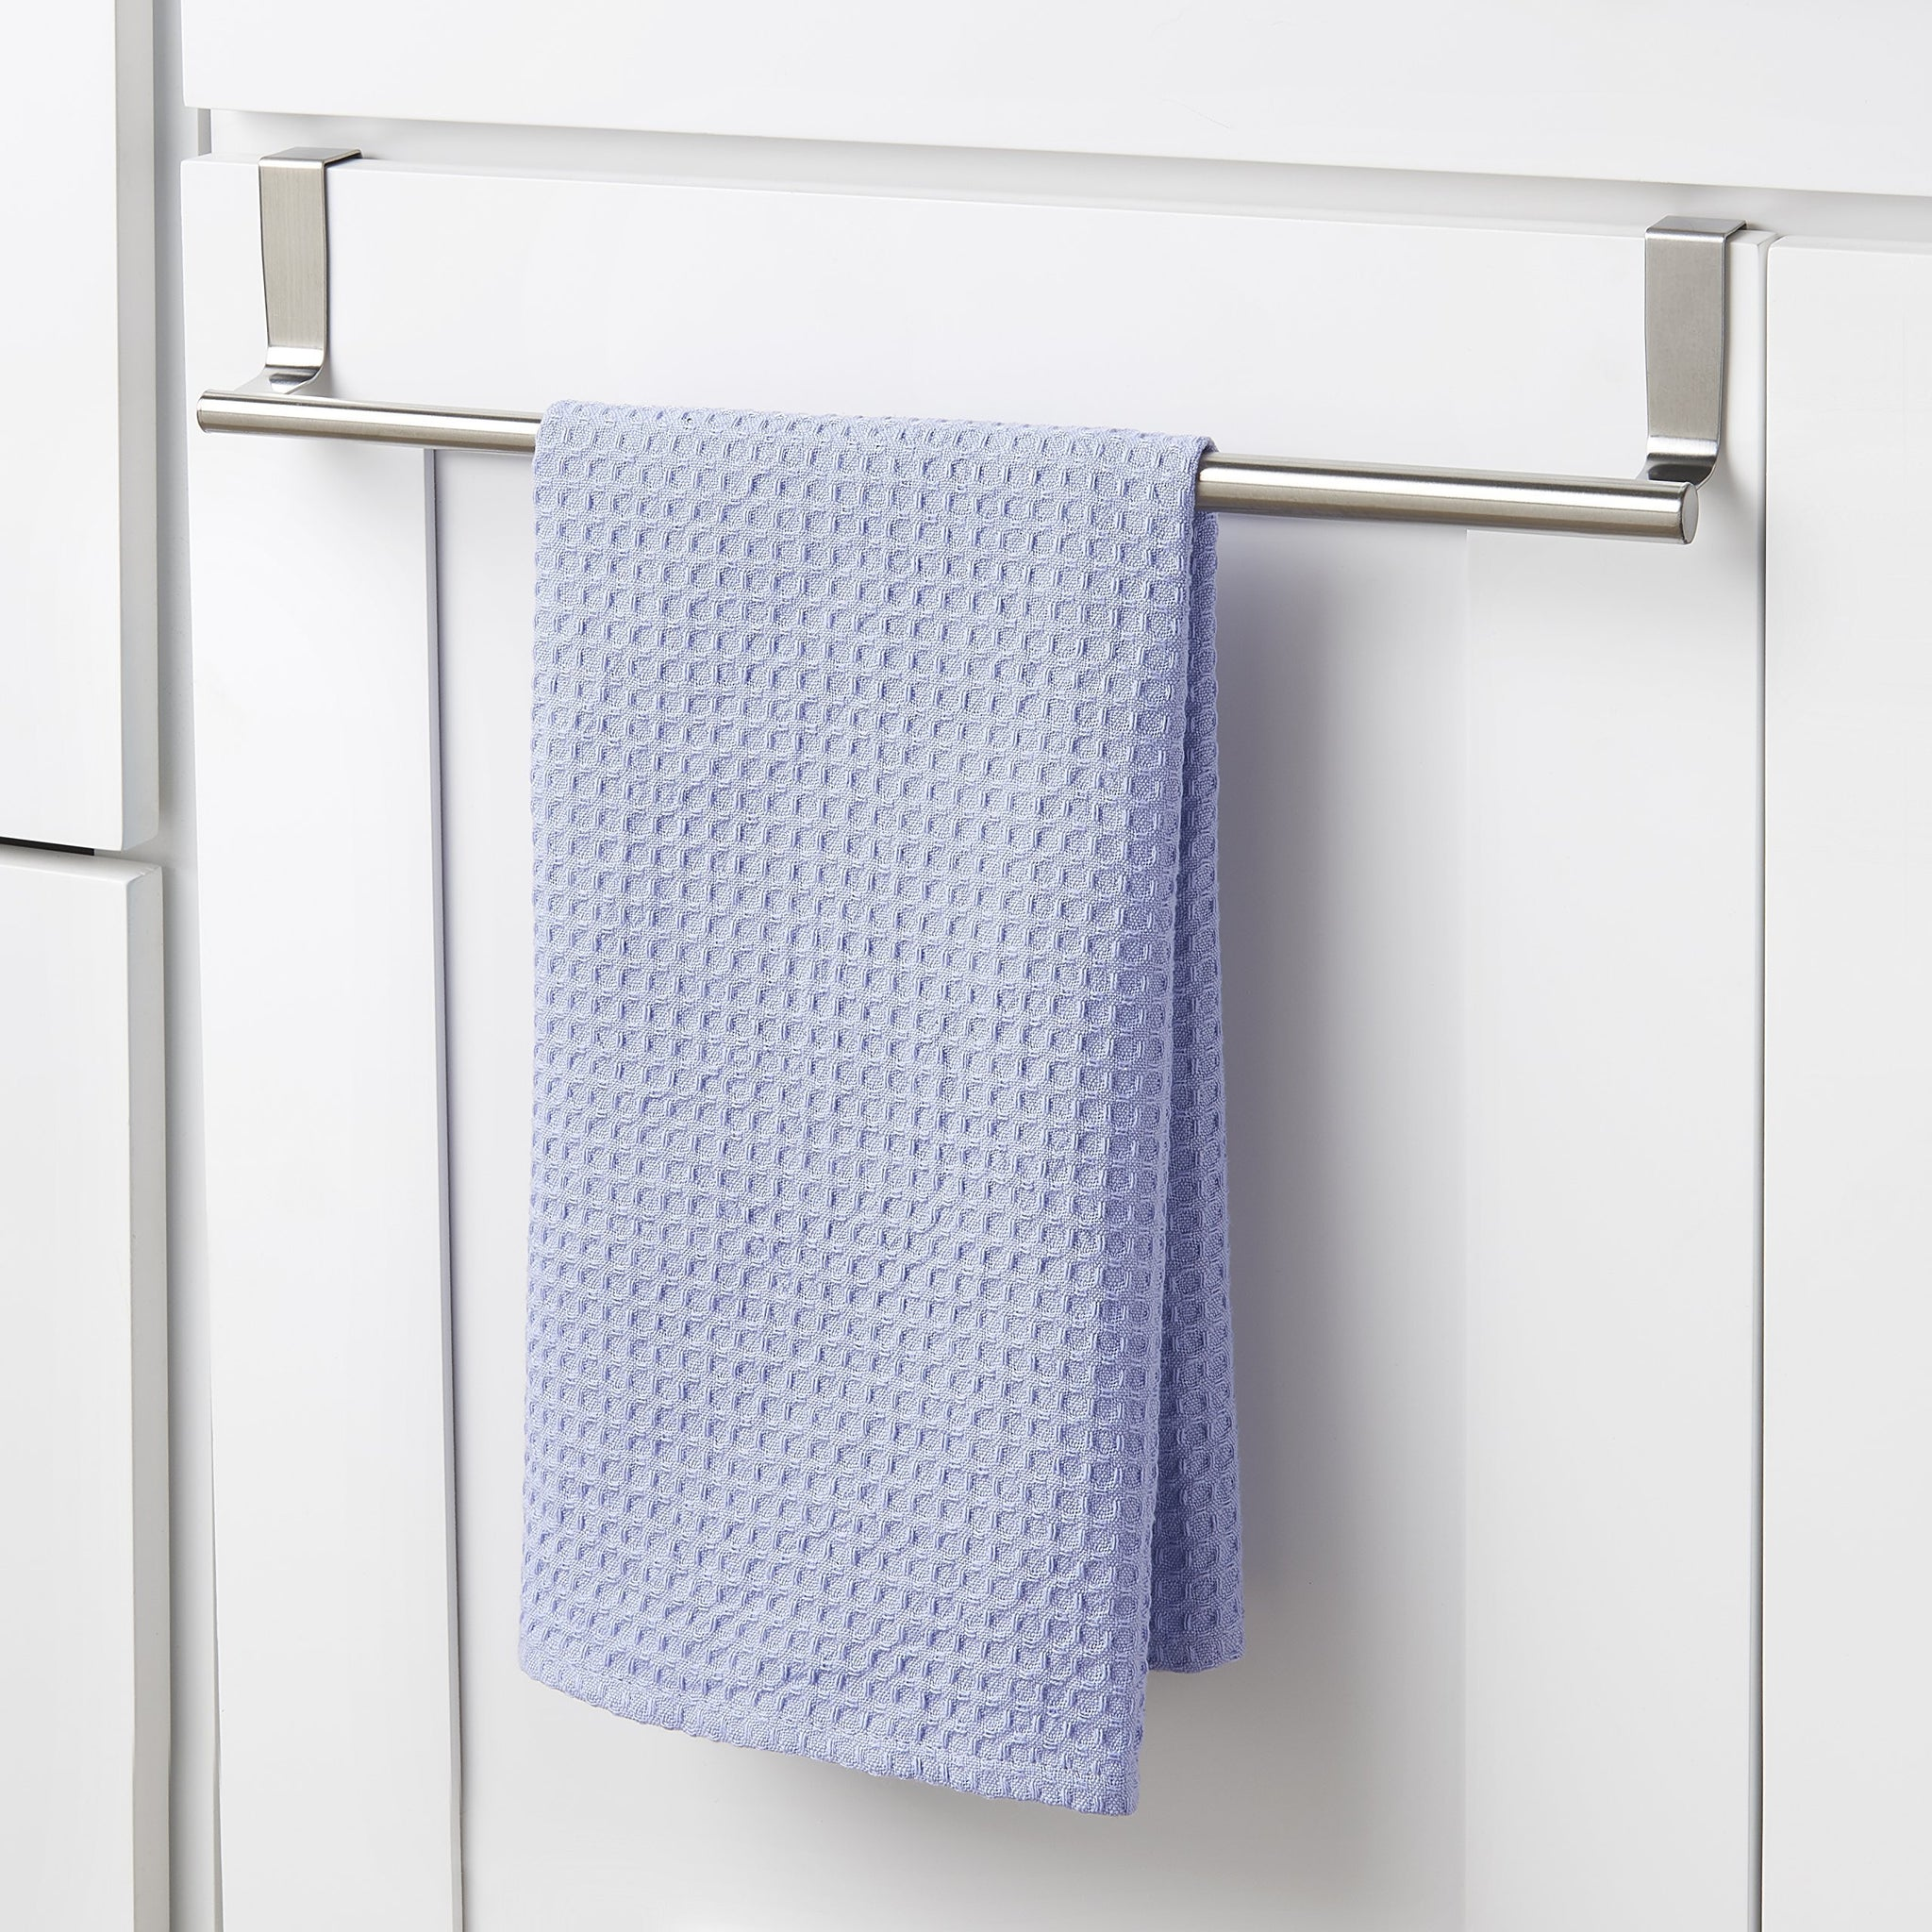 Amazon best youcopia over the cabinet door expandable towel bar stainless steel